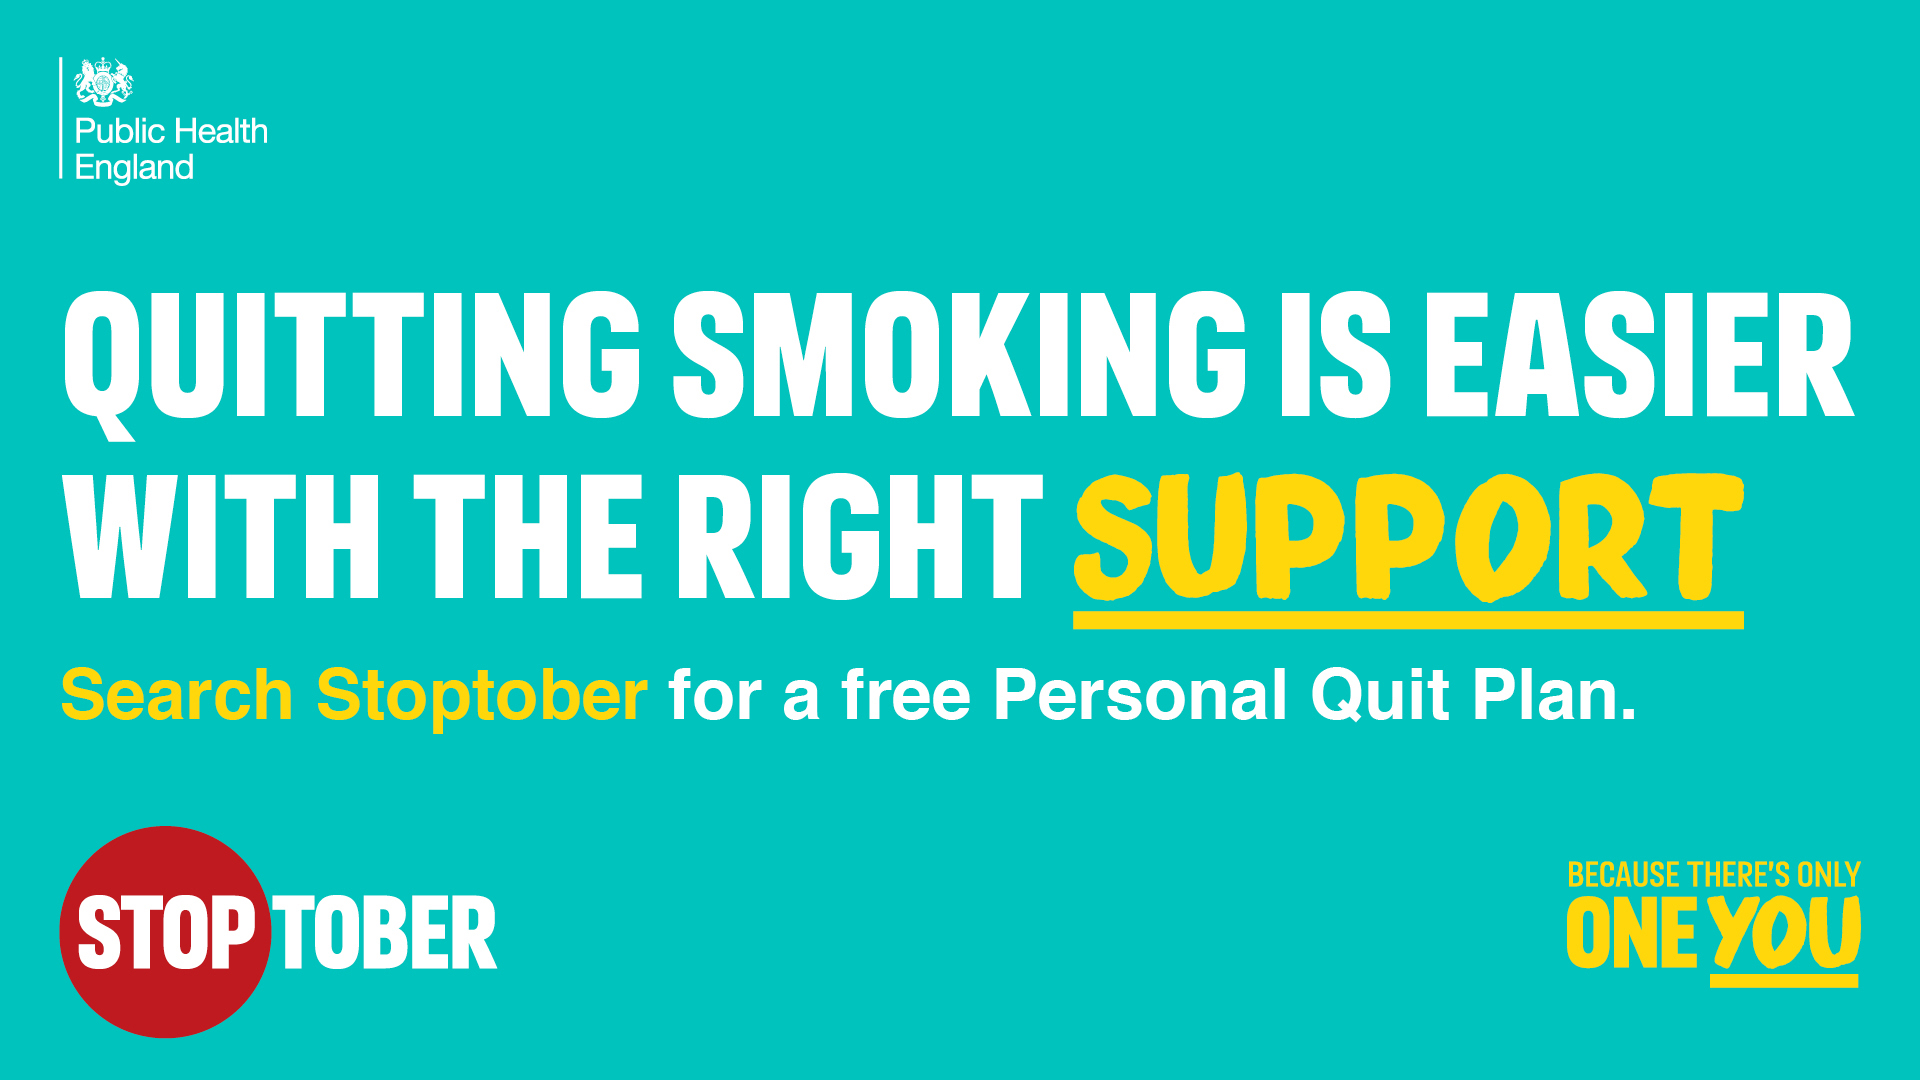 Quitting smoking is easier with the right support